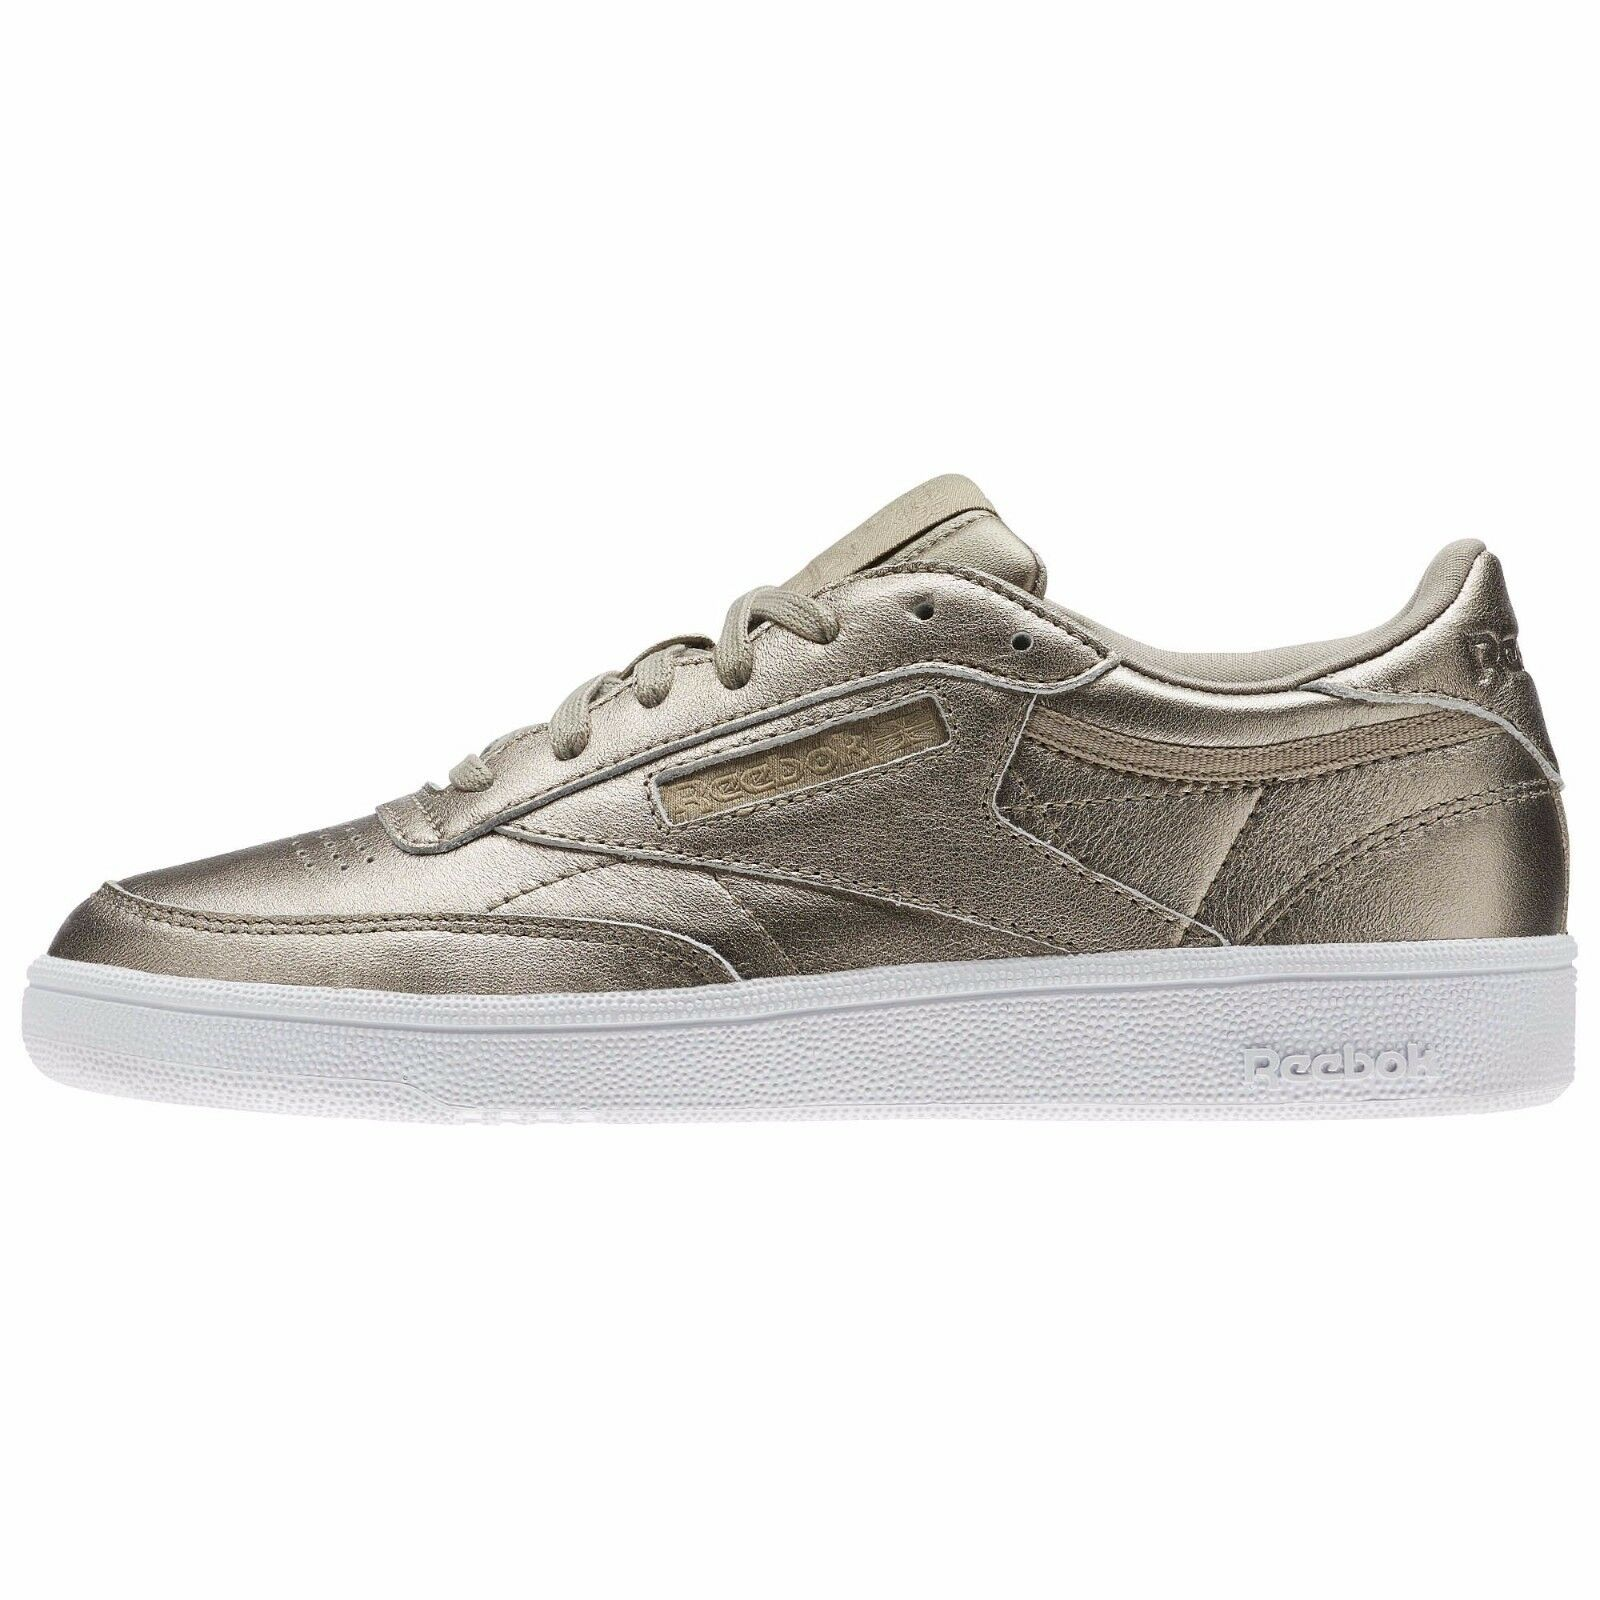 Reebok femmes  CLASSIC CLUB C 85 MELTED METAL LEATHER  Chaussures Gris  Gold BS7901 b